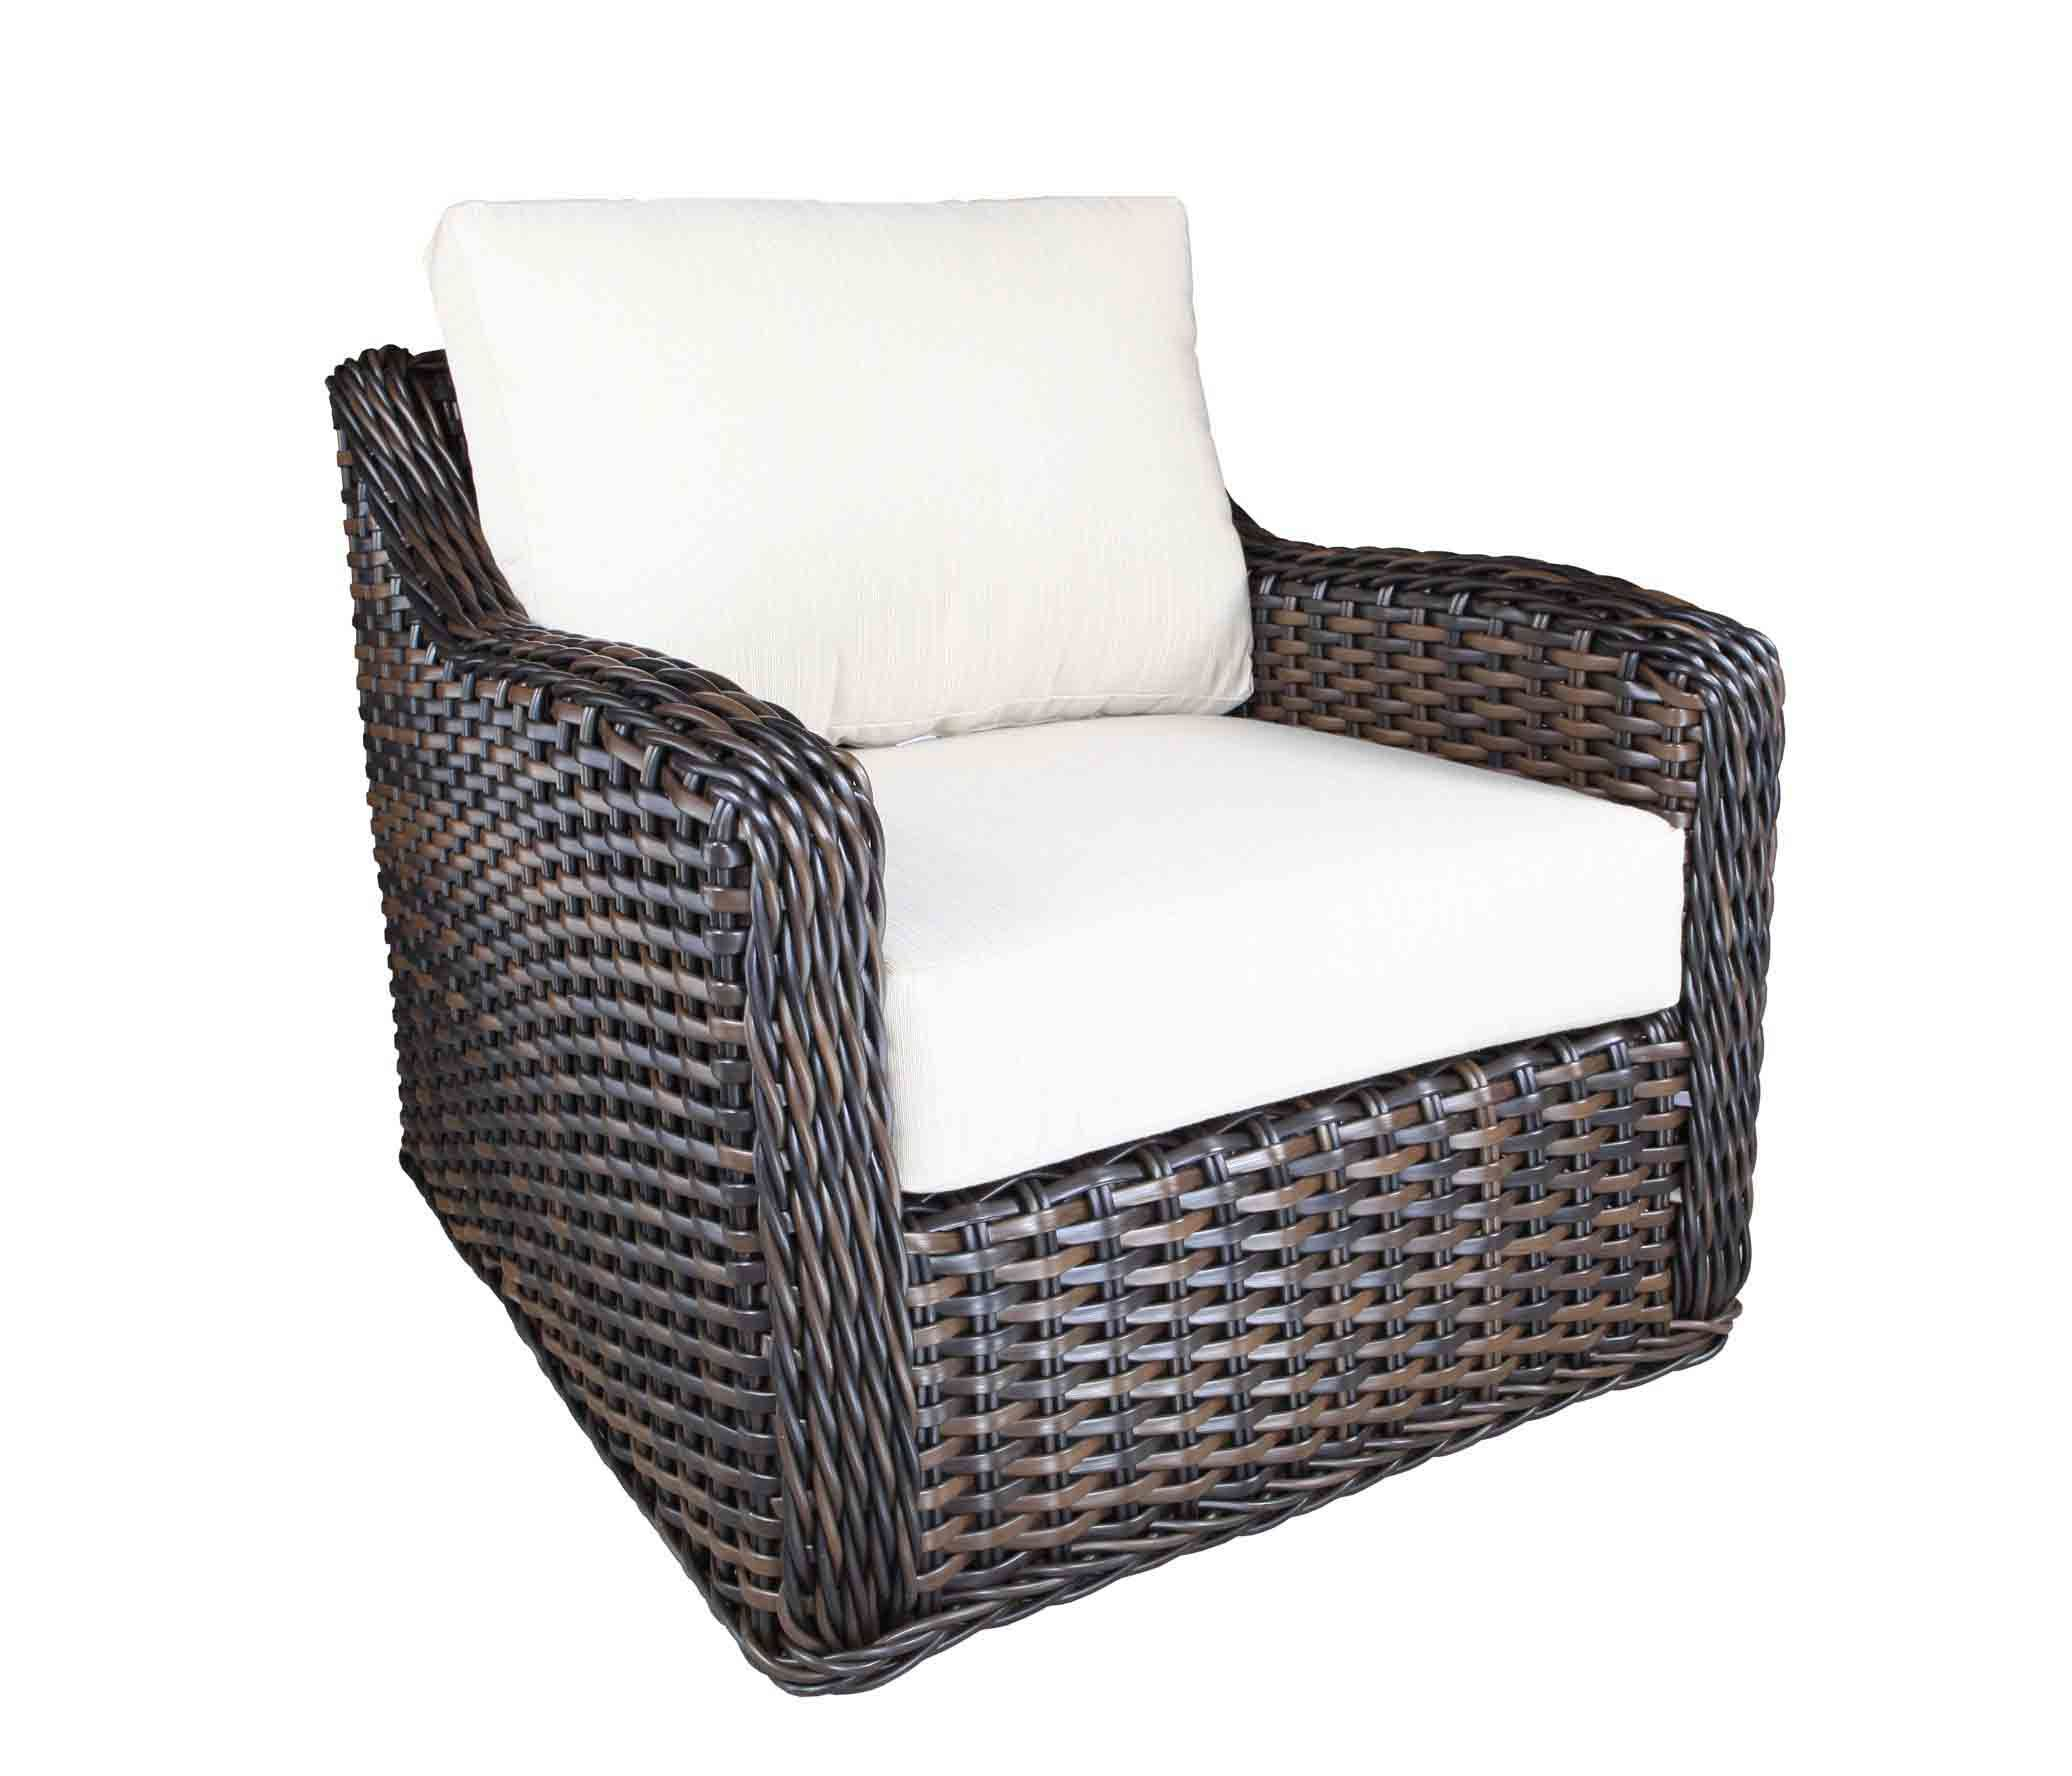 Shop Patio Furniture By Details Cabanacoast Store Locator Greater Toronto Area Canada Amp The